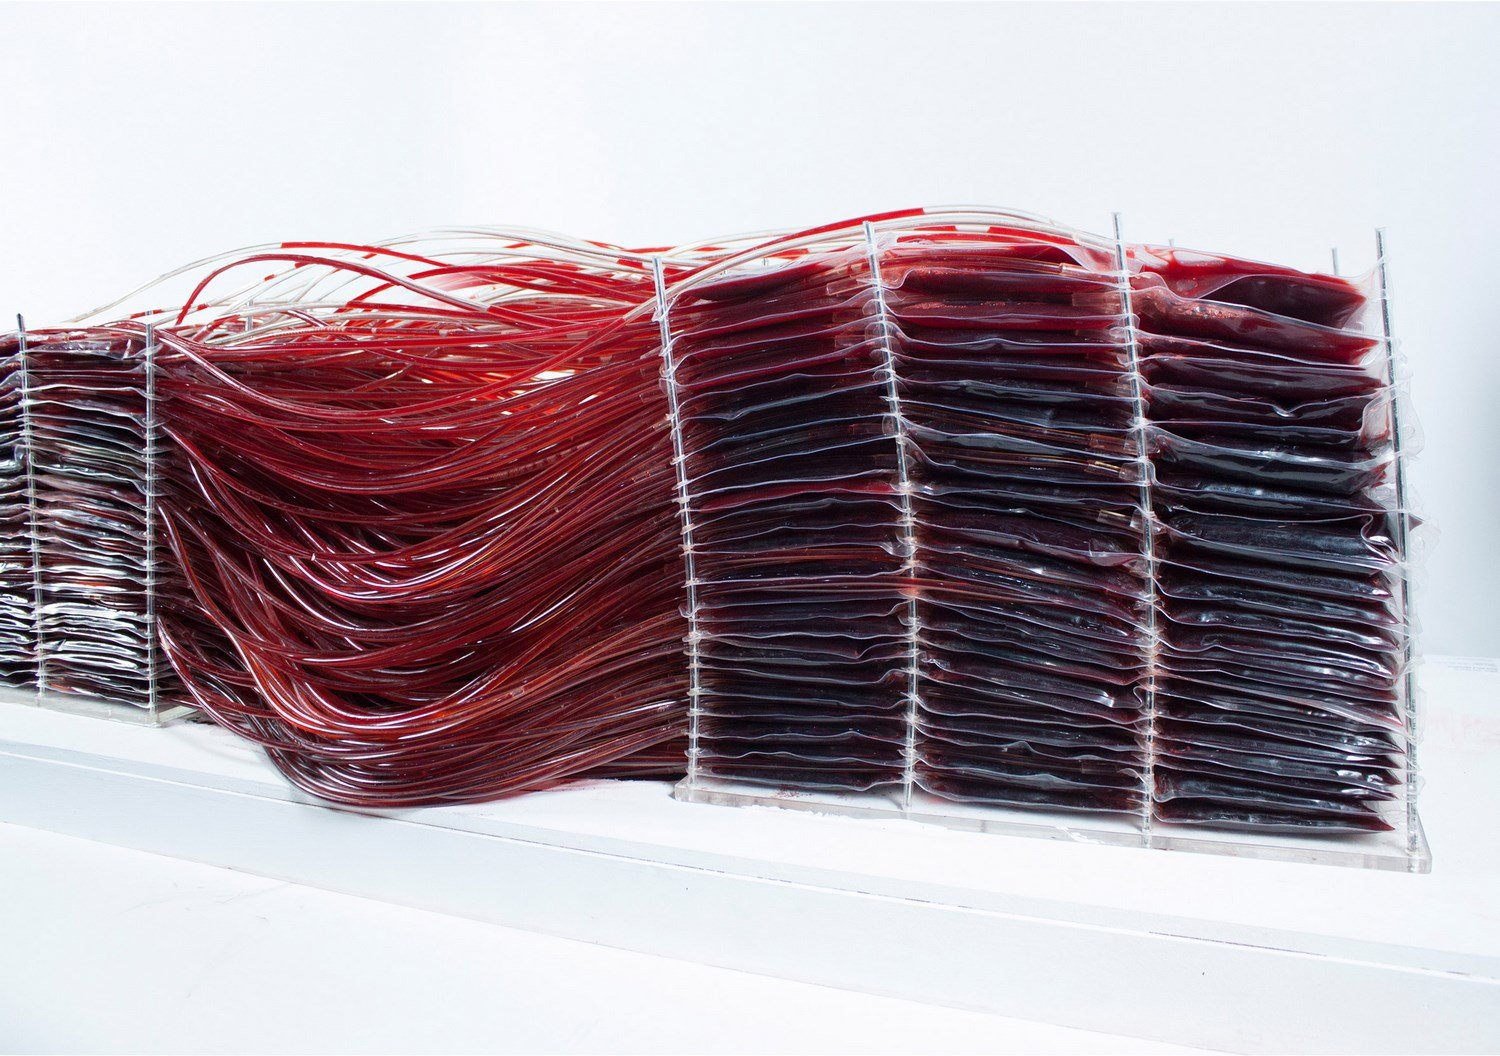 red series chair made of blood by Hyun-Gi Kim the chic flaneuse 2